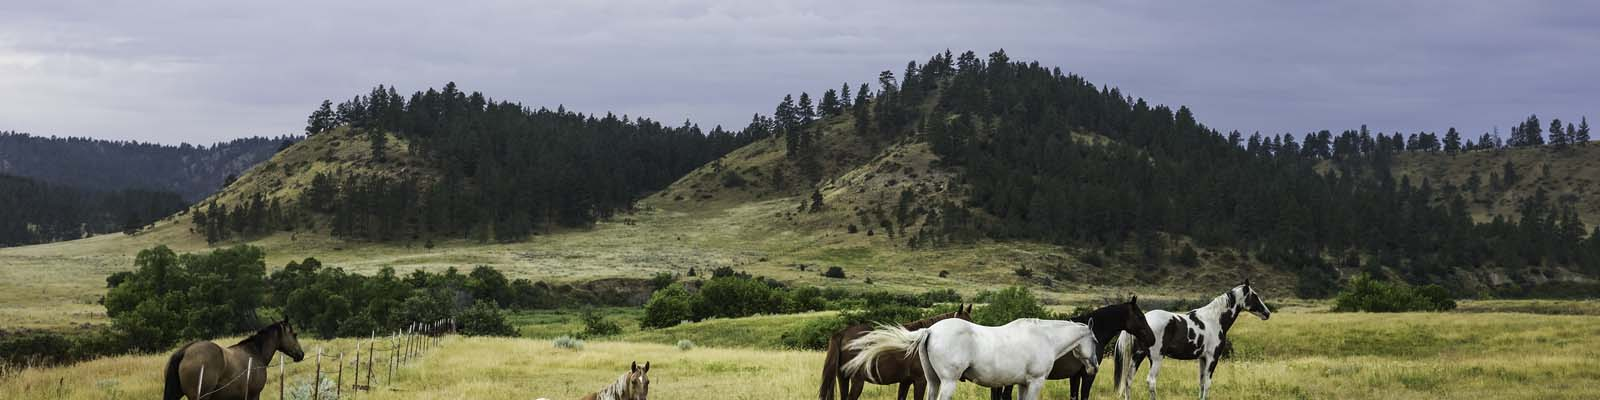 This is an image of a horse farm in Billings Montana. ASTA-USA provides professional translation services in this city.